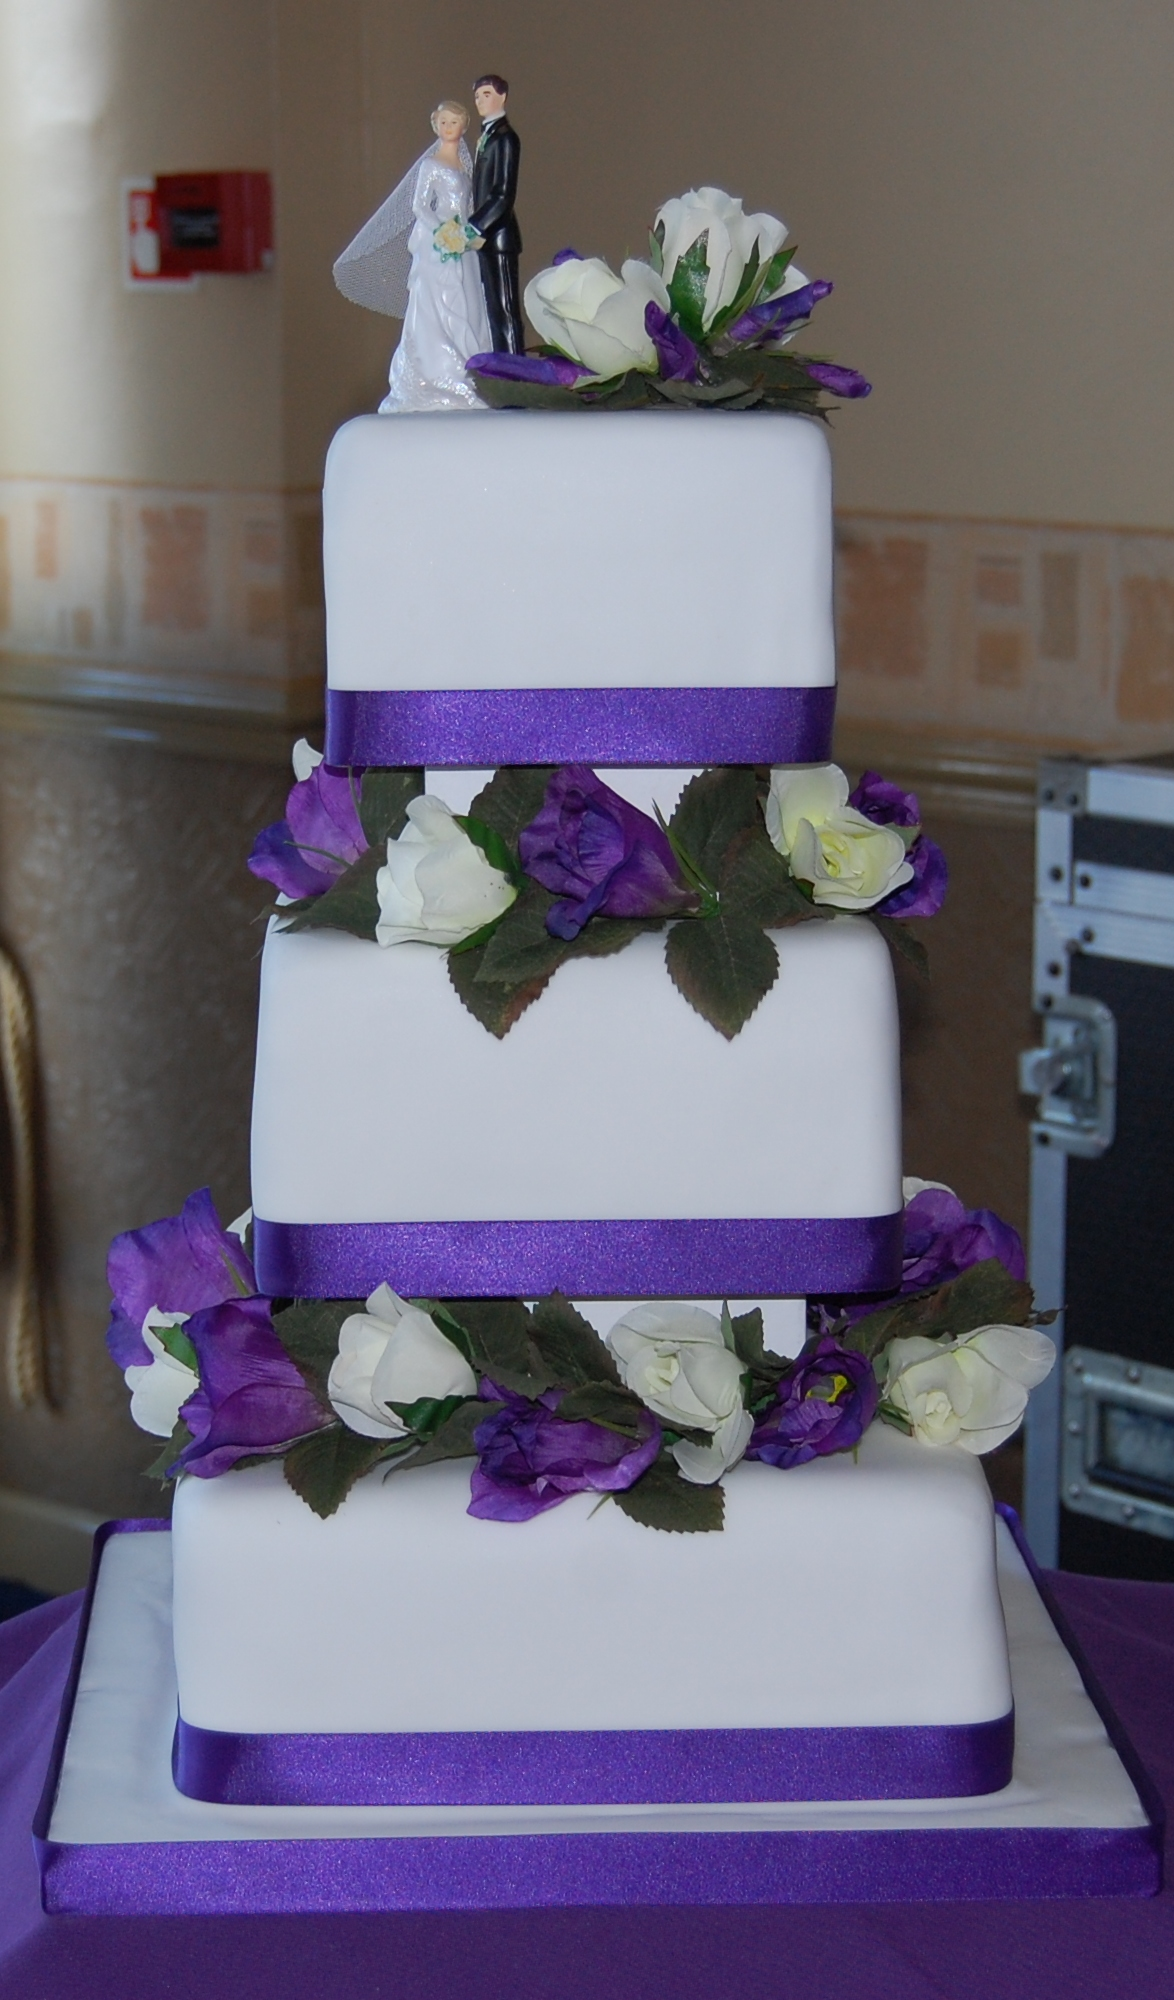 Cadbury Purple 3 Tier Wedding Cake Simple And Elegant Hours Of Fun - 3 Tier Wedding Cakes